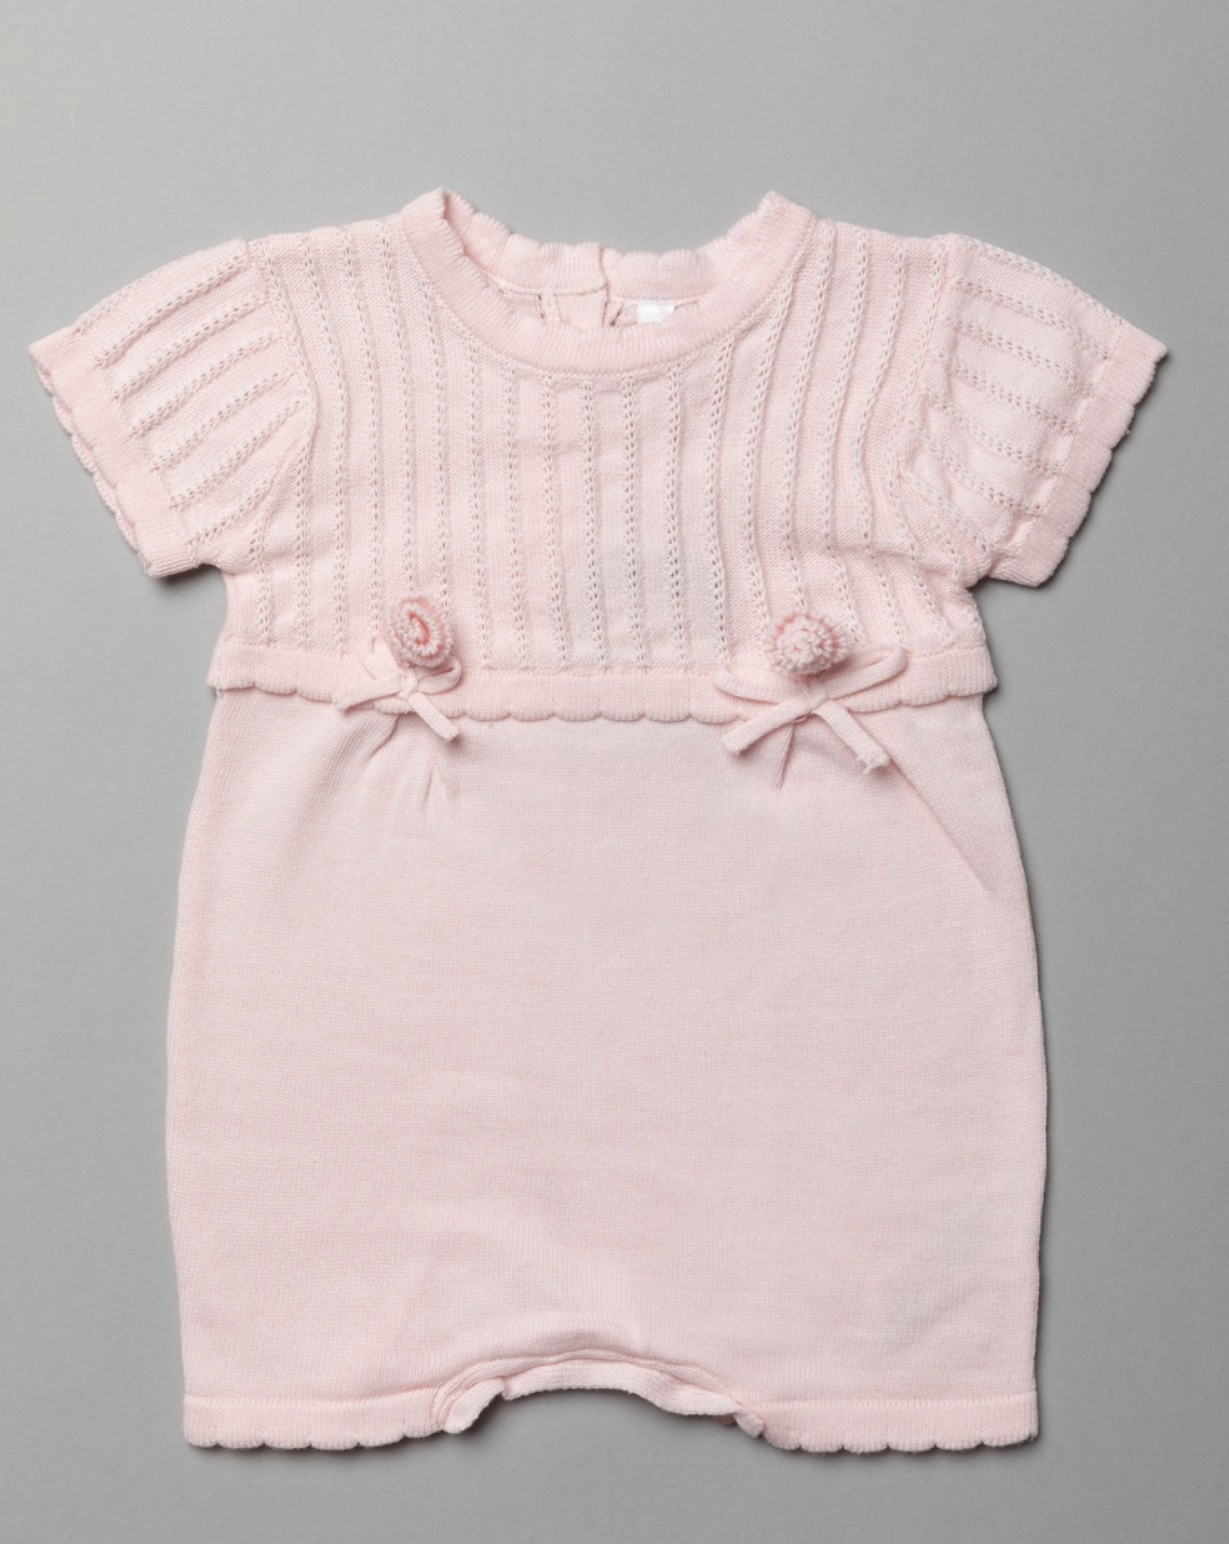 Rock a Bye Baby Boutique Baby Girls Knitted Romper PACK OF 6